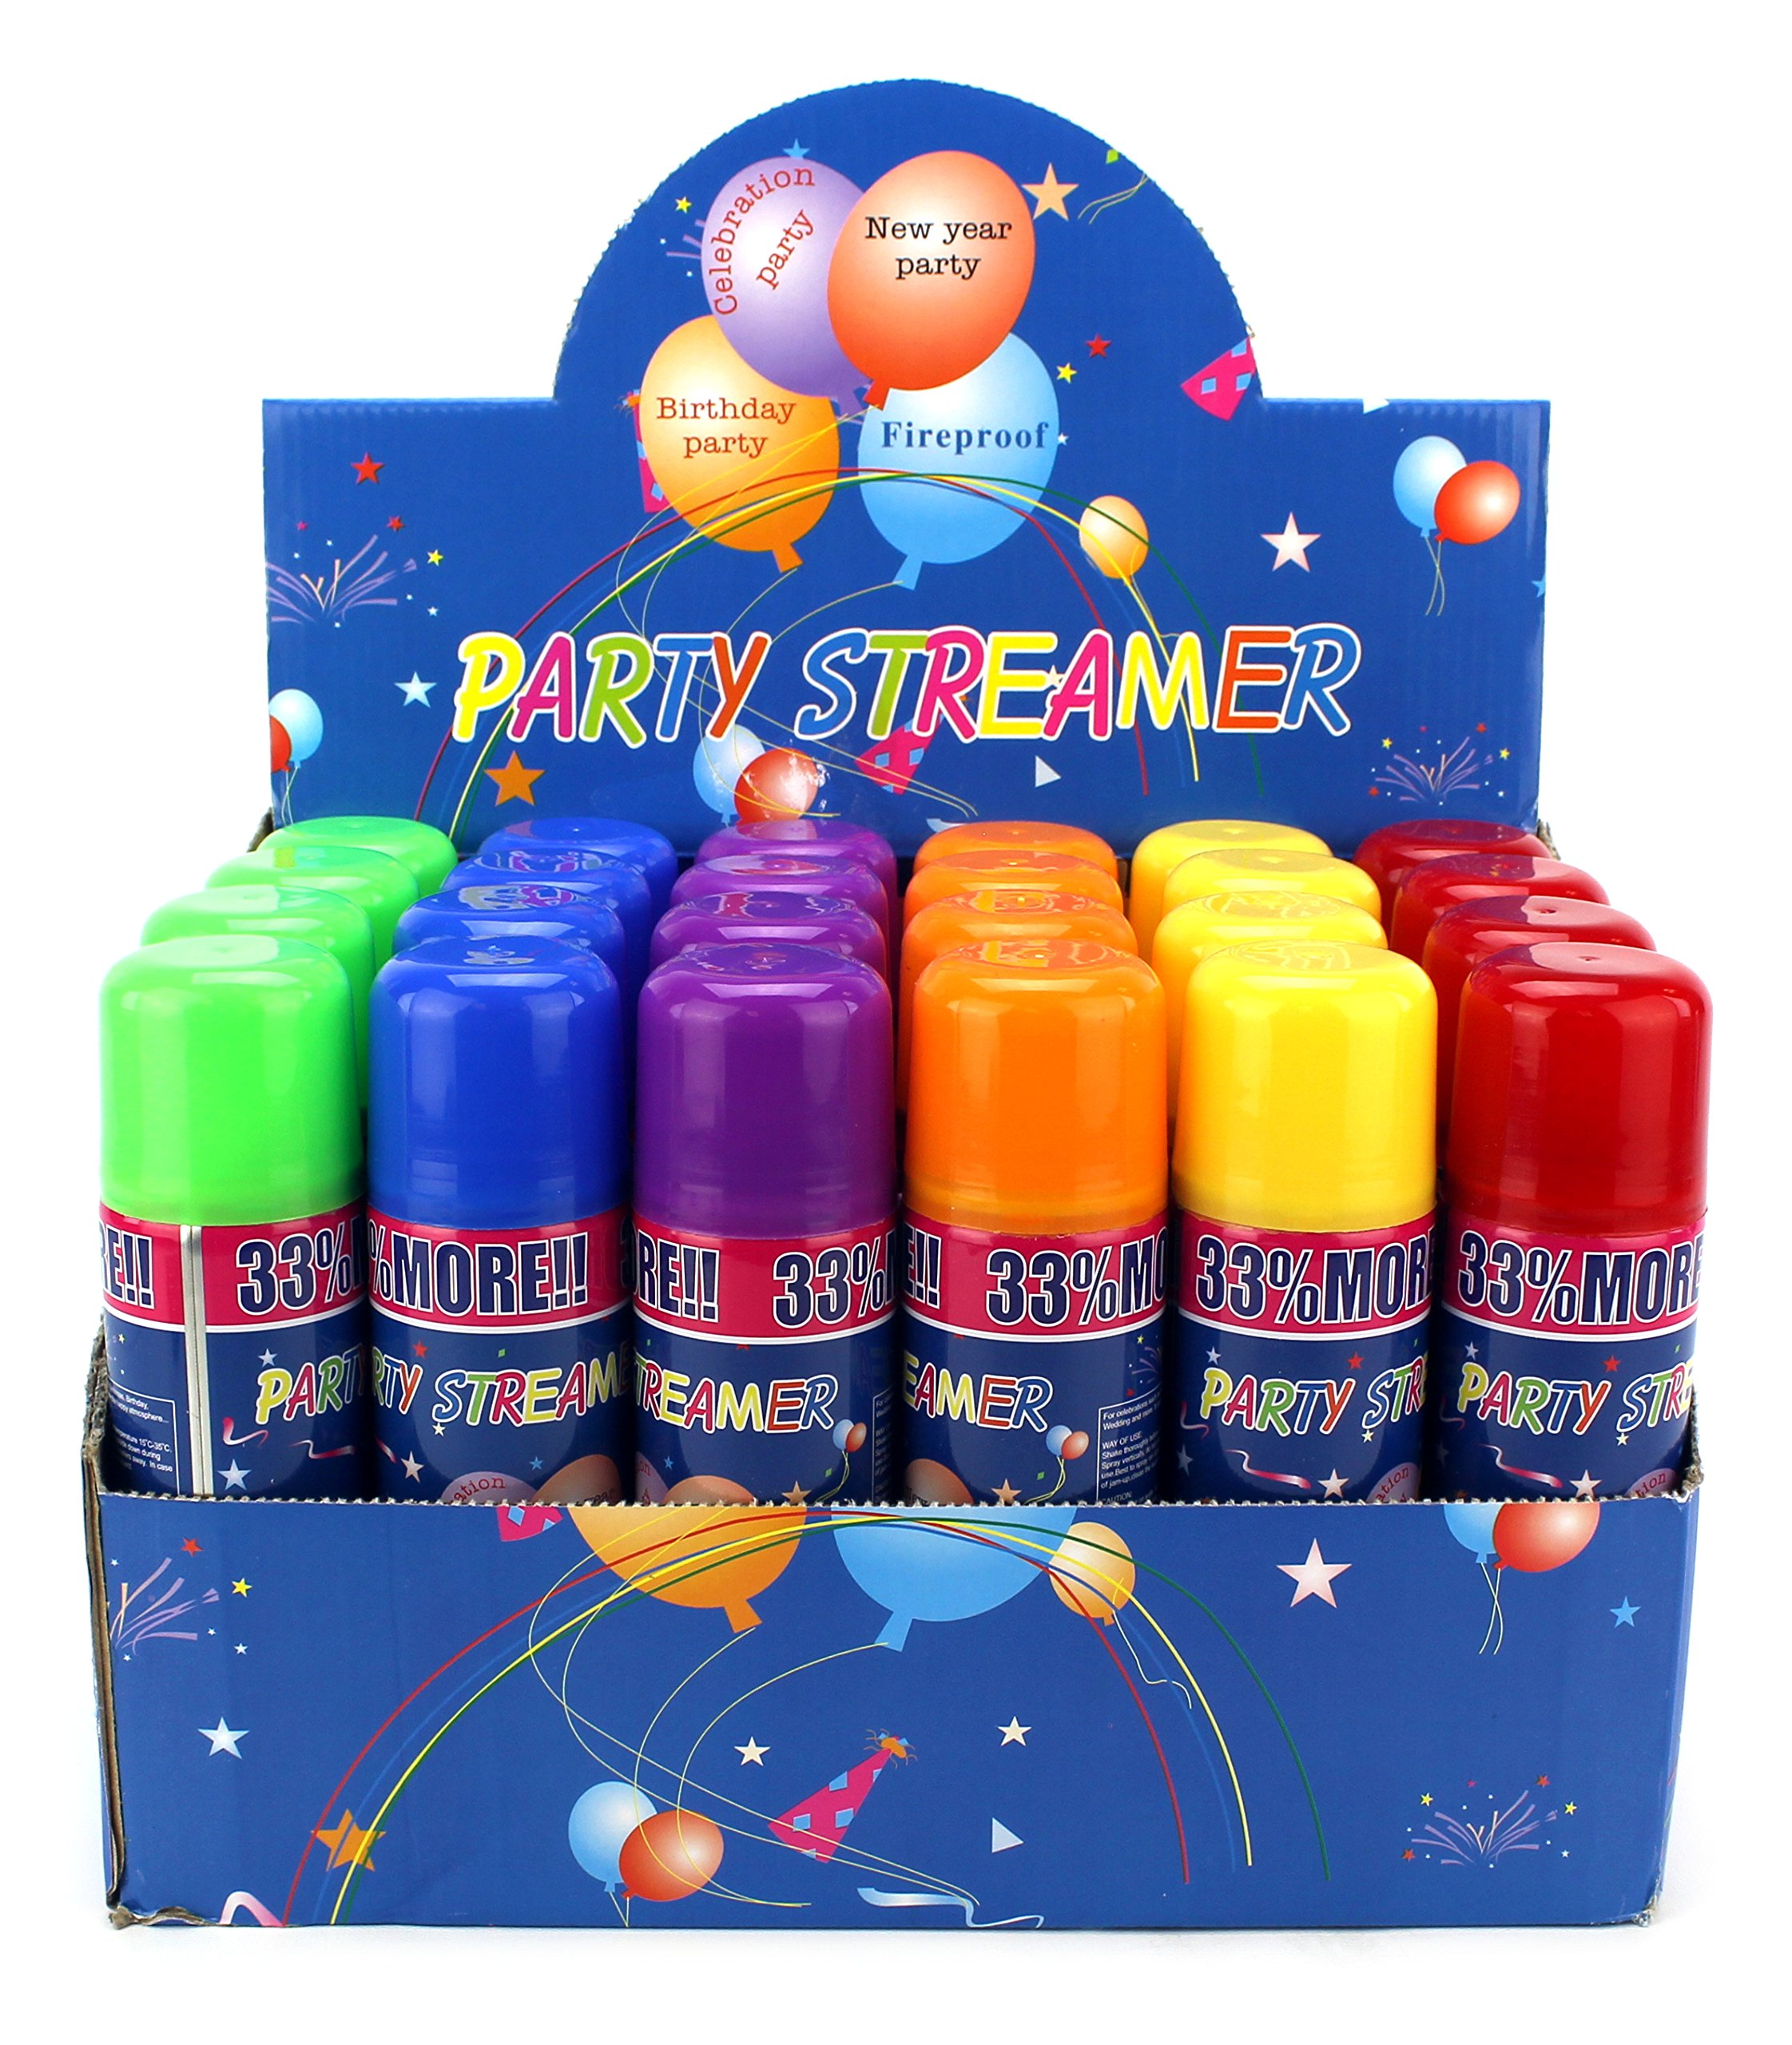 24 Pack of Party Streamer Spray String in a Can Children's Kid's Party Supplies, Perfect for Parties/Events by Velocity Toys